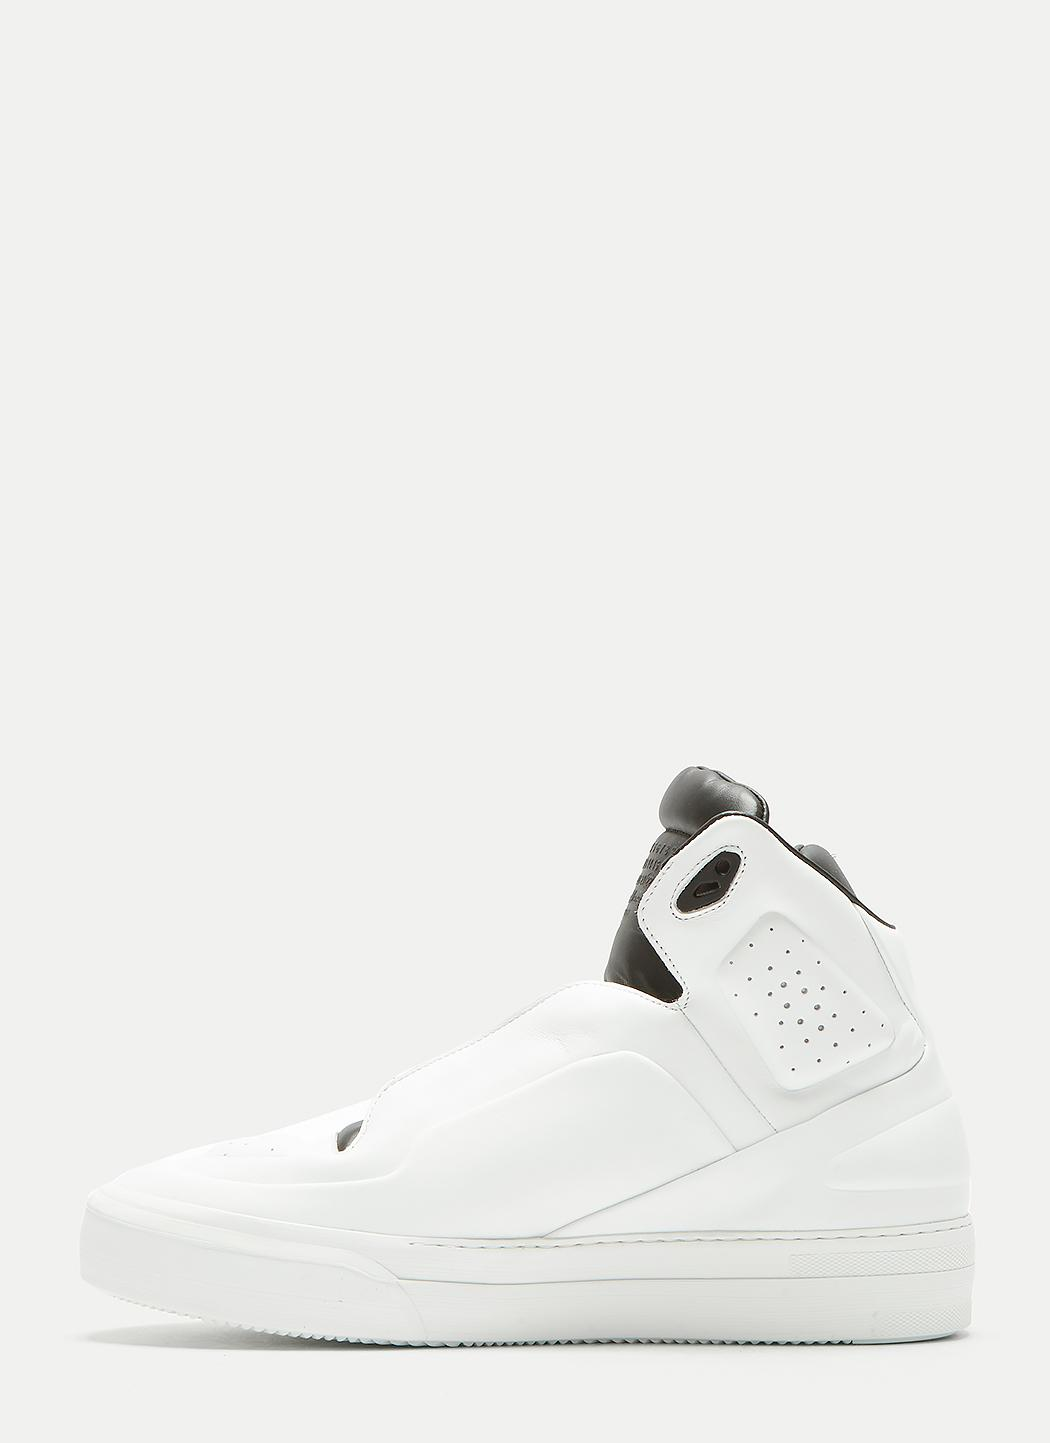 two-tone hi-top sneakers - White Maison Martin Margiela qztyG2xHx